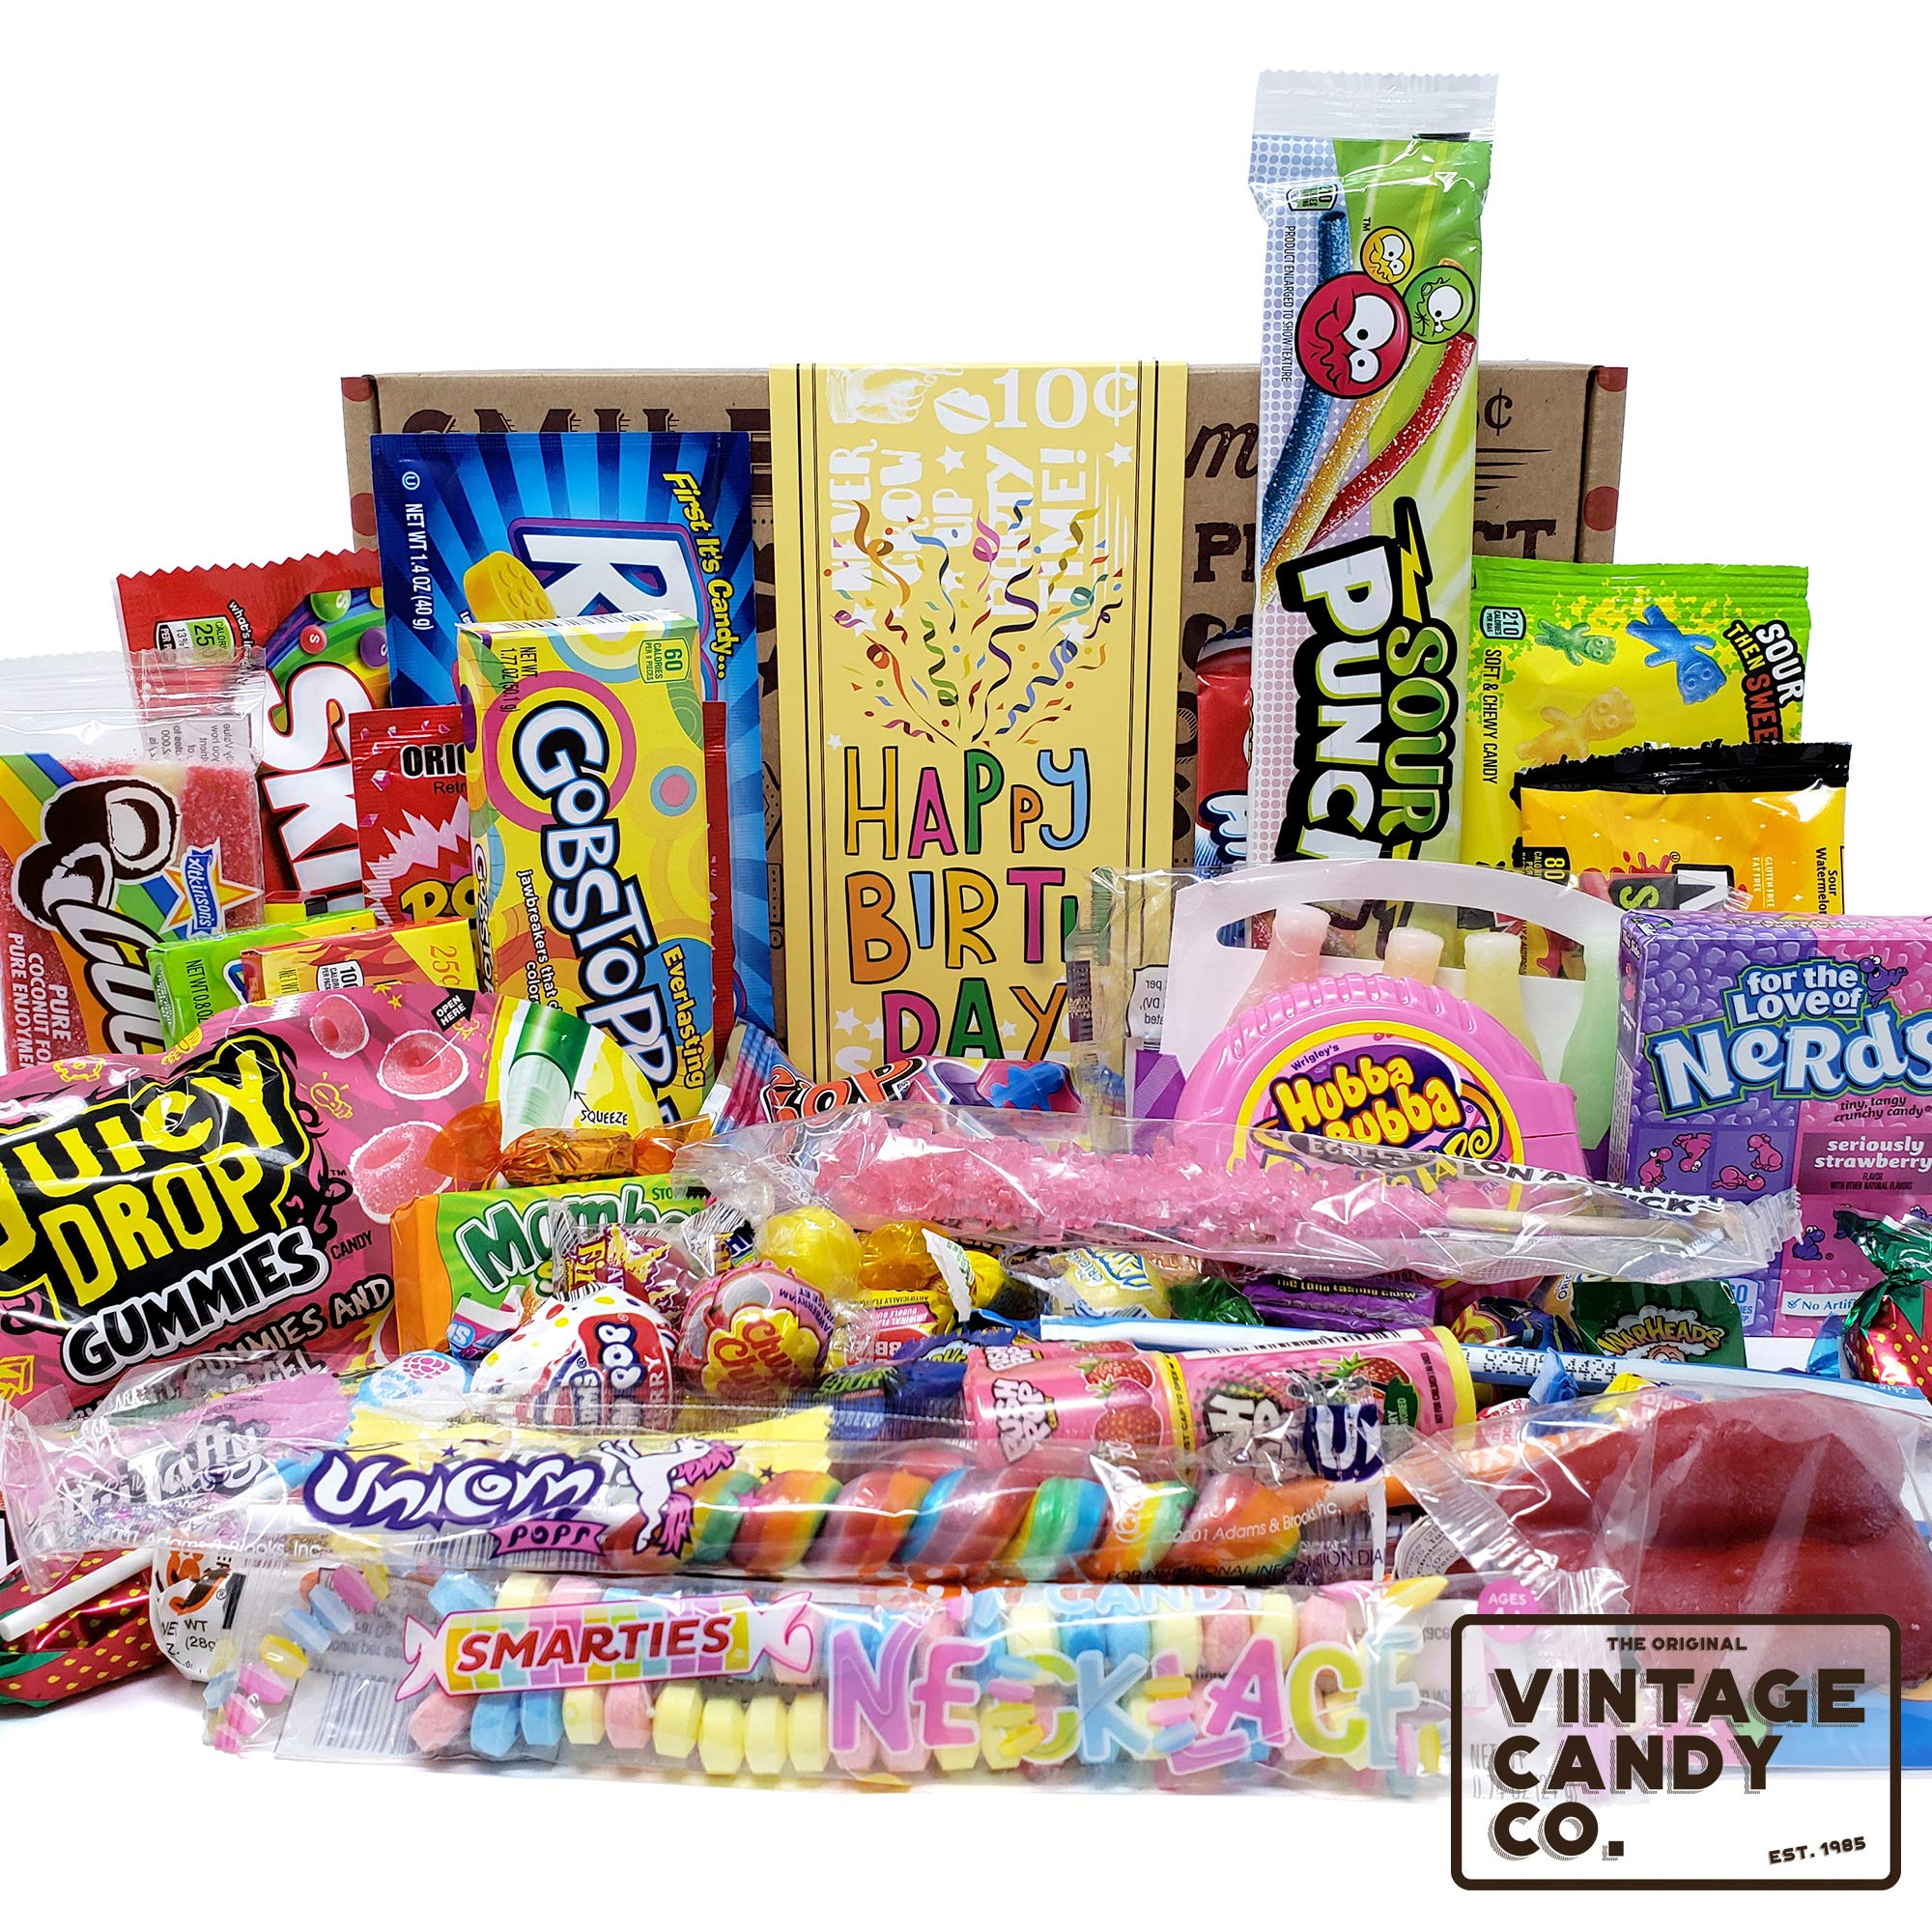 VINTAGE CANDY CO. HAPPY BIRTHDAY FUN CANDY CARE PACKAGE - Modern and Retro Candies Assortment Variety - GAG GIFT BASKET - PERFECT For Adults, College Student, Military, Teens, Man, Woman, Boy or Girl by Vintage Candy Co.